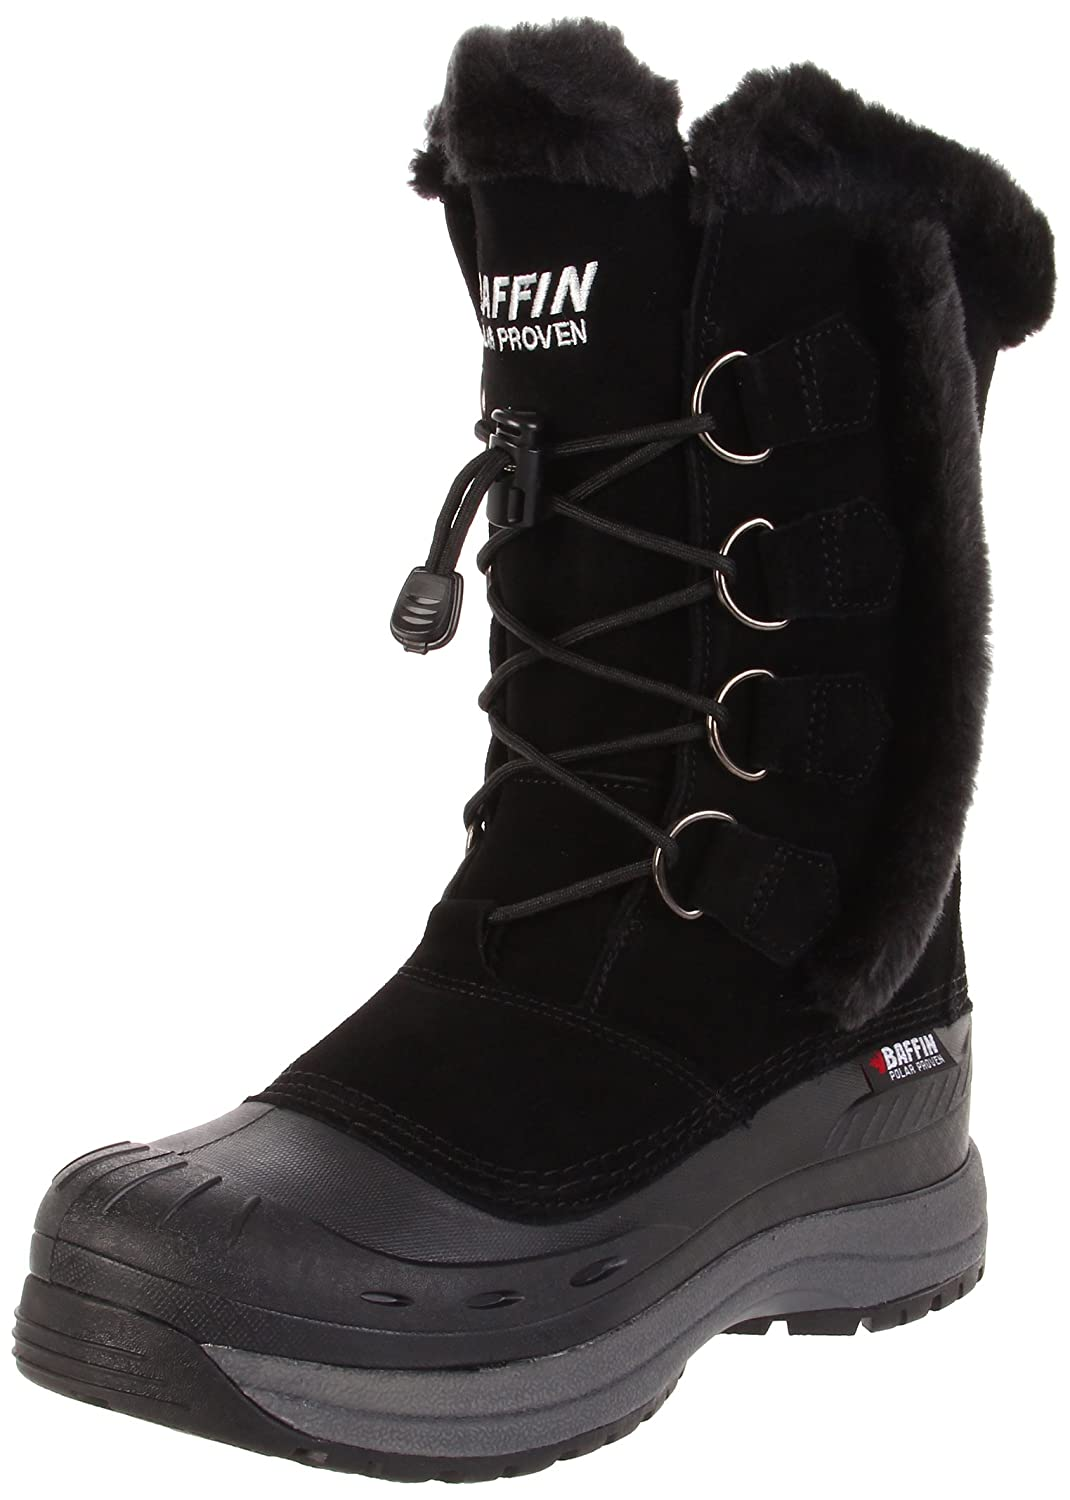 Baffin Women's Chloe Insulated Boot B001E5CQE8 7 B(M) US|Black